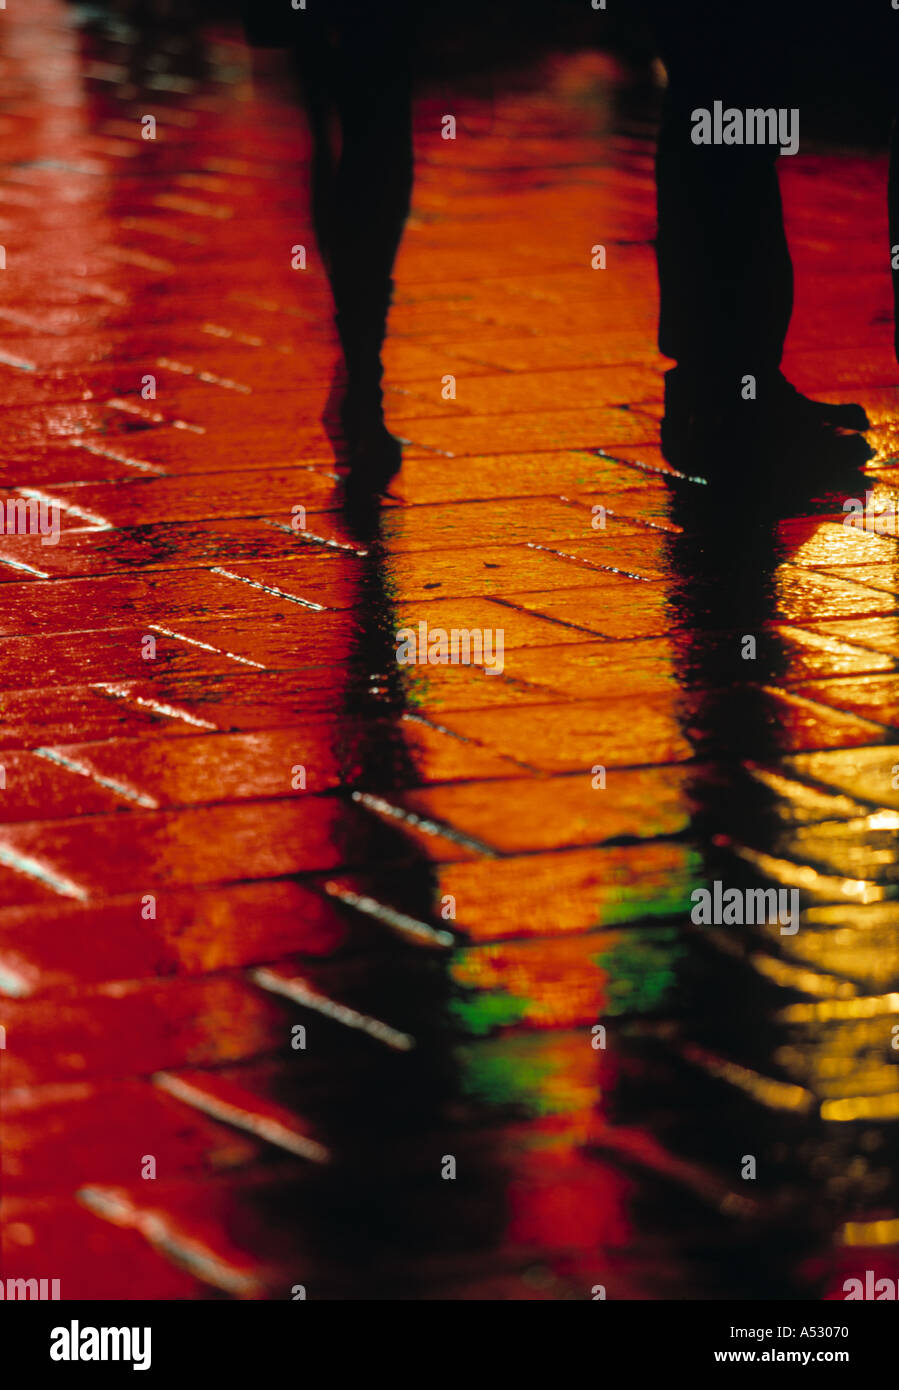 Reflections, Picadilly Circus, London, England - Stock Image